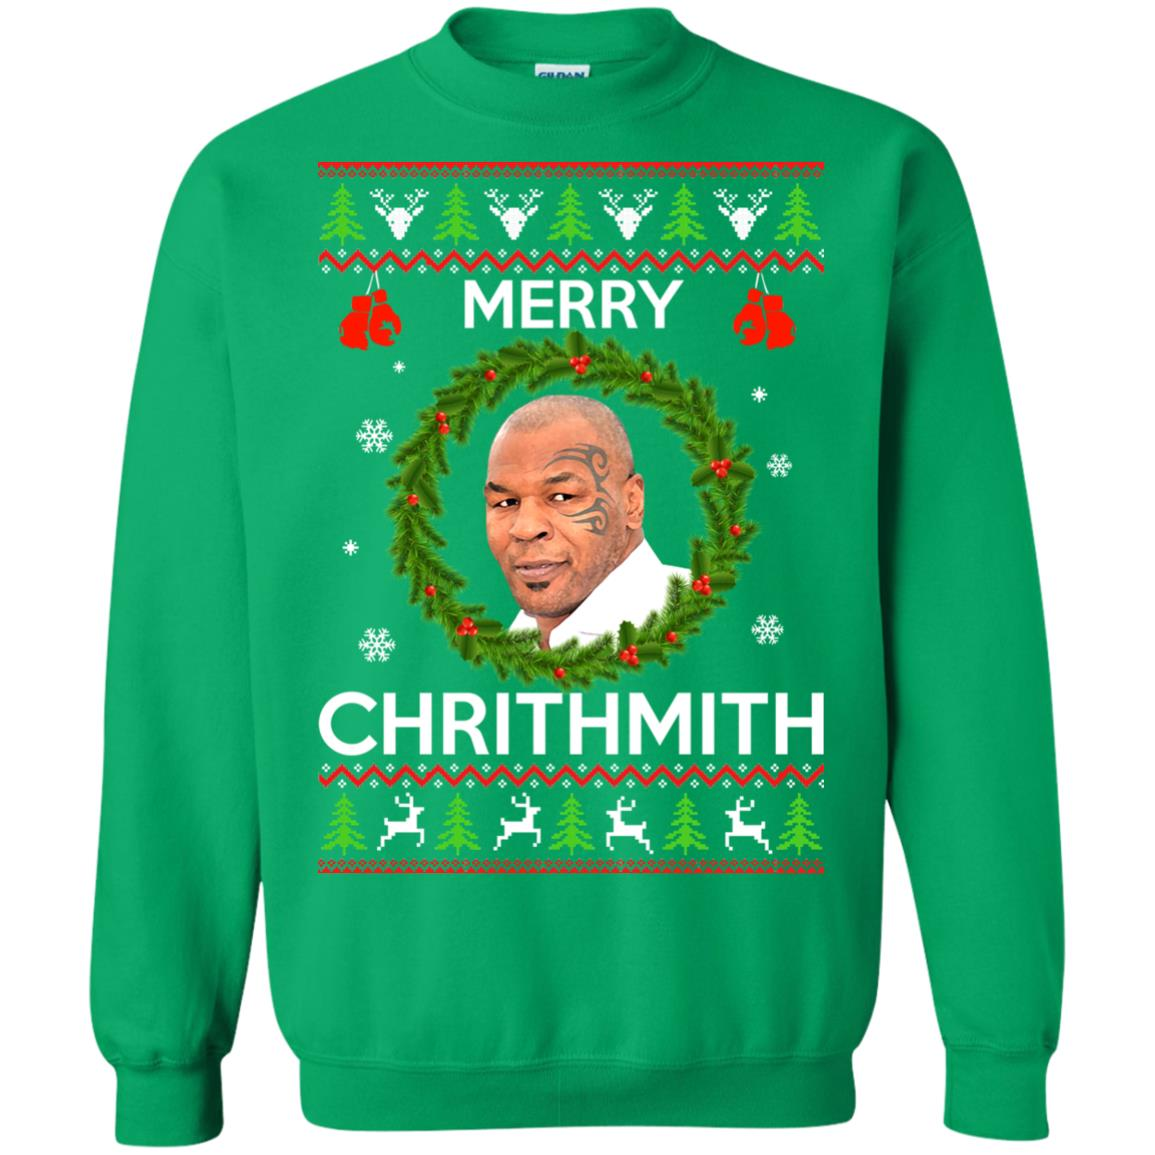 Mike Tyson Christmas Meme.Mike Tyson Christmas Sweater Merry Chrithmith Sweatshirt